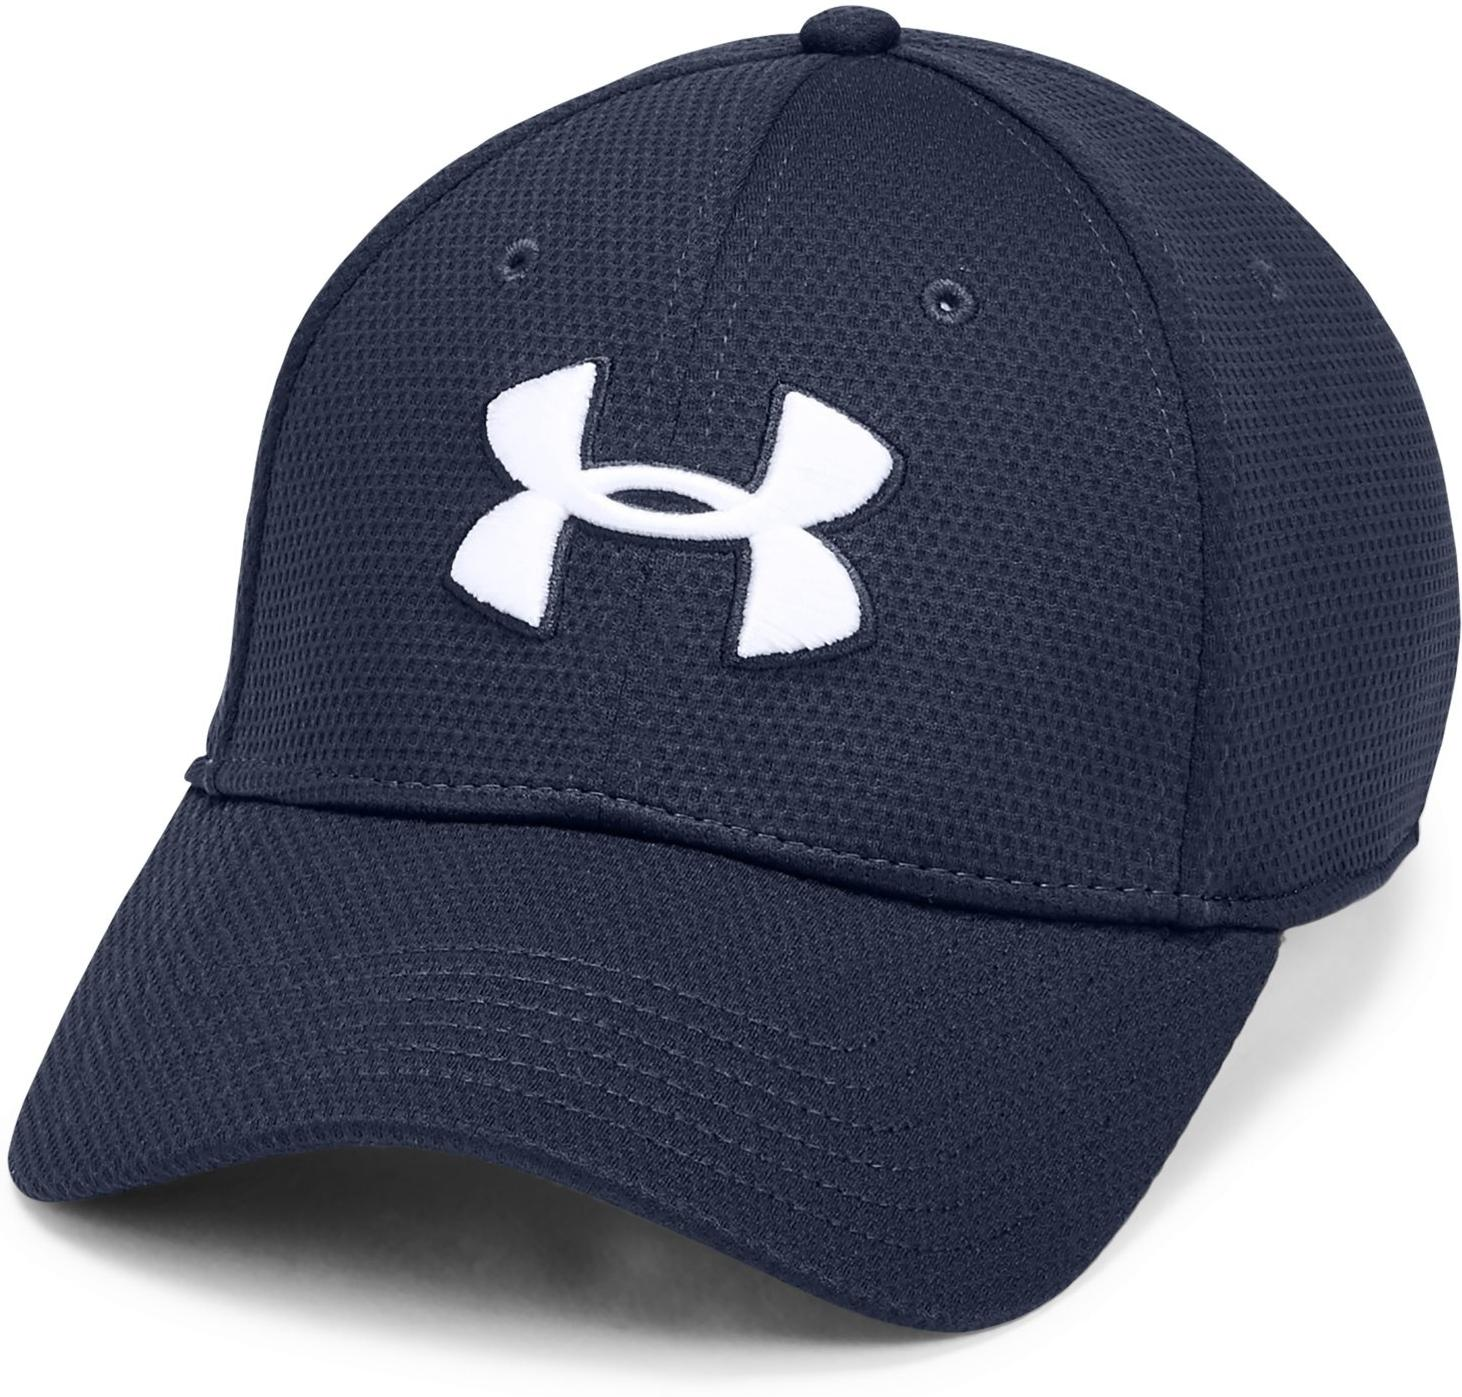 Gorra Under Armour Under Armour Blitzing II